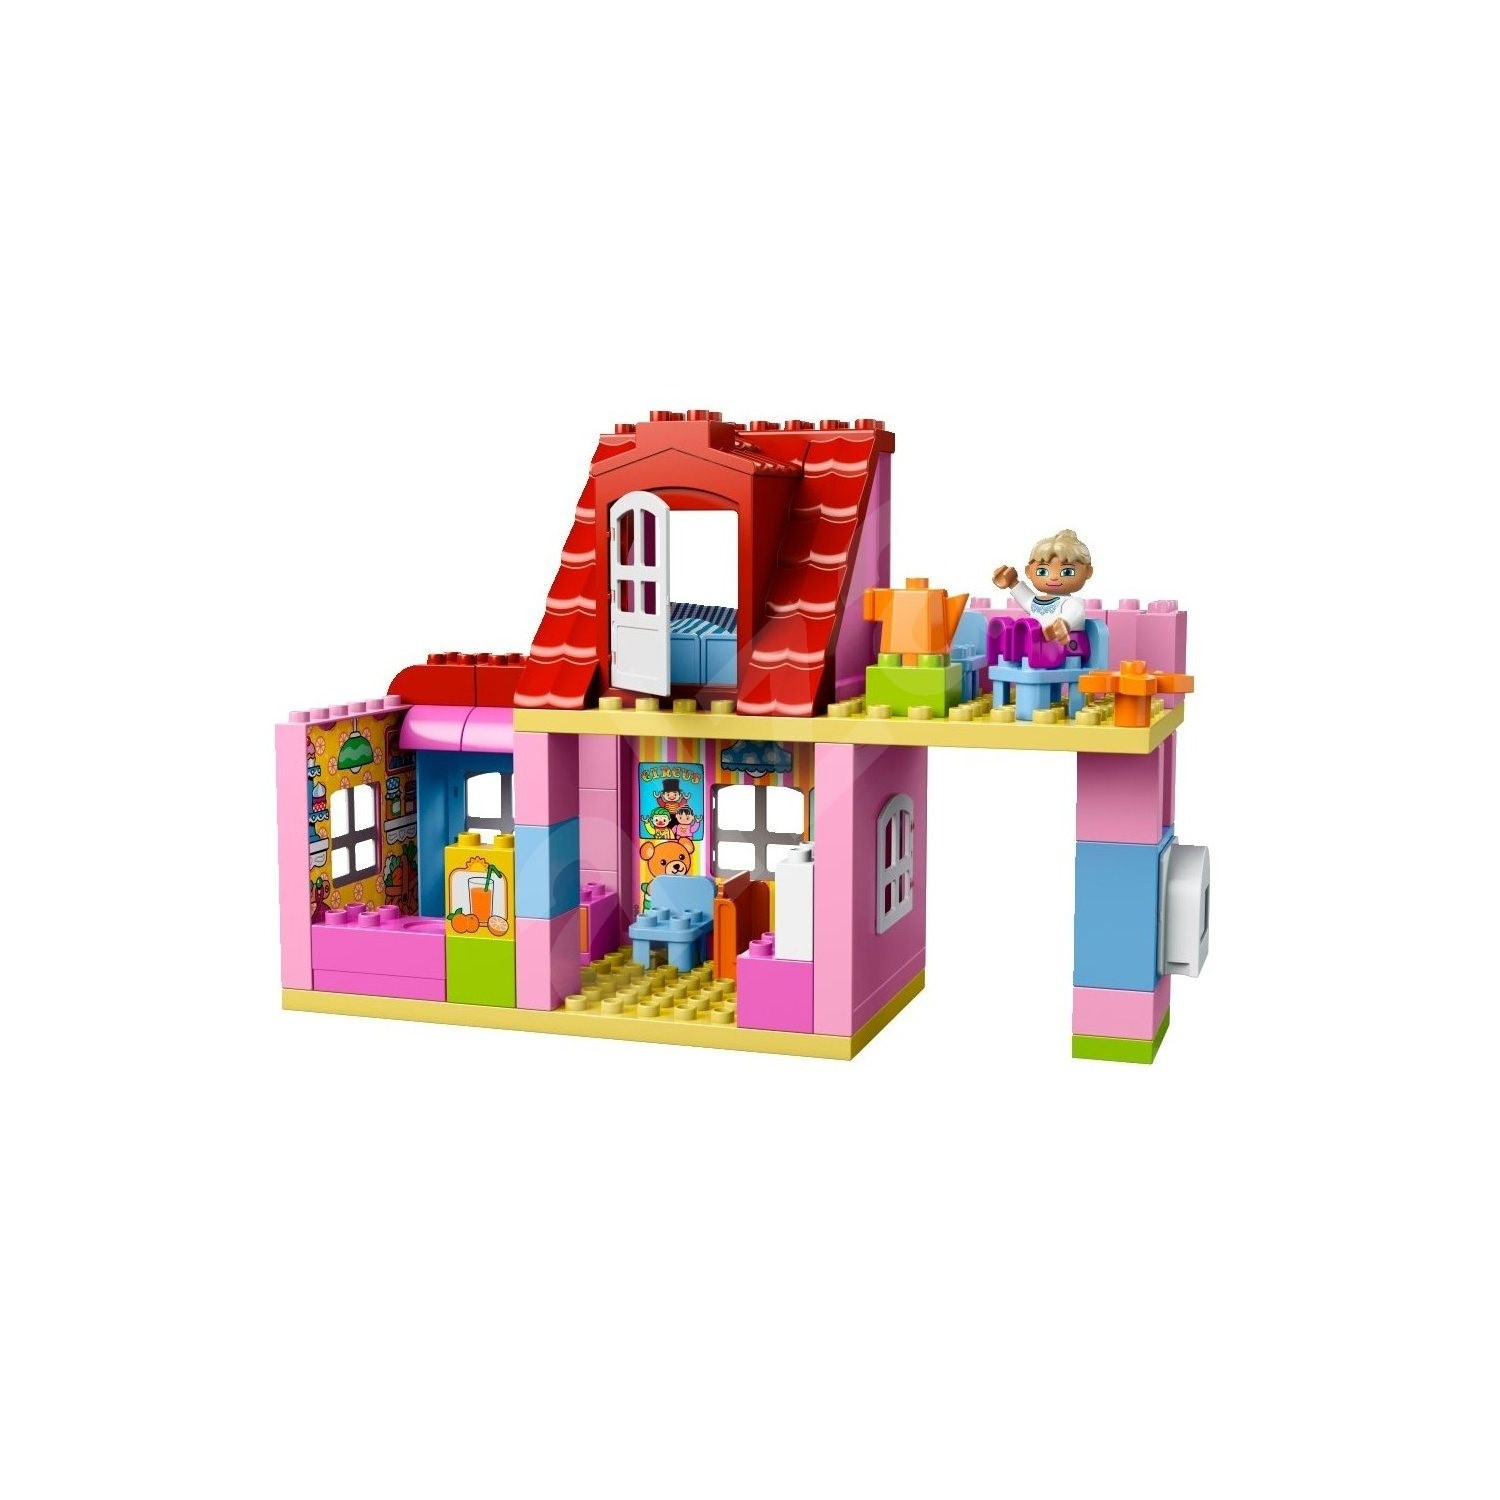 lego duplo lego ville 10505 playhouse building kit. Black Bedroom Furniture Sets. Home Design Ideas